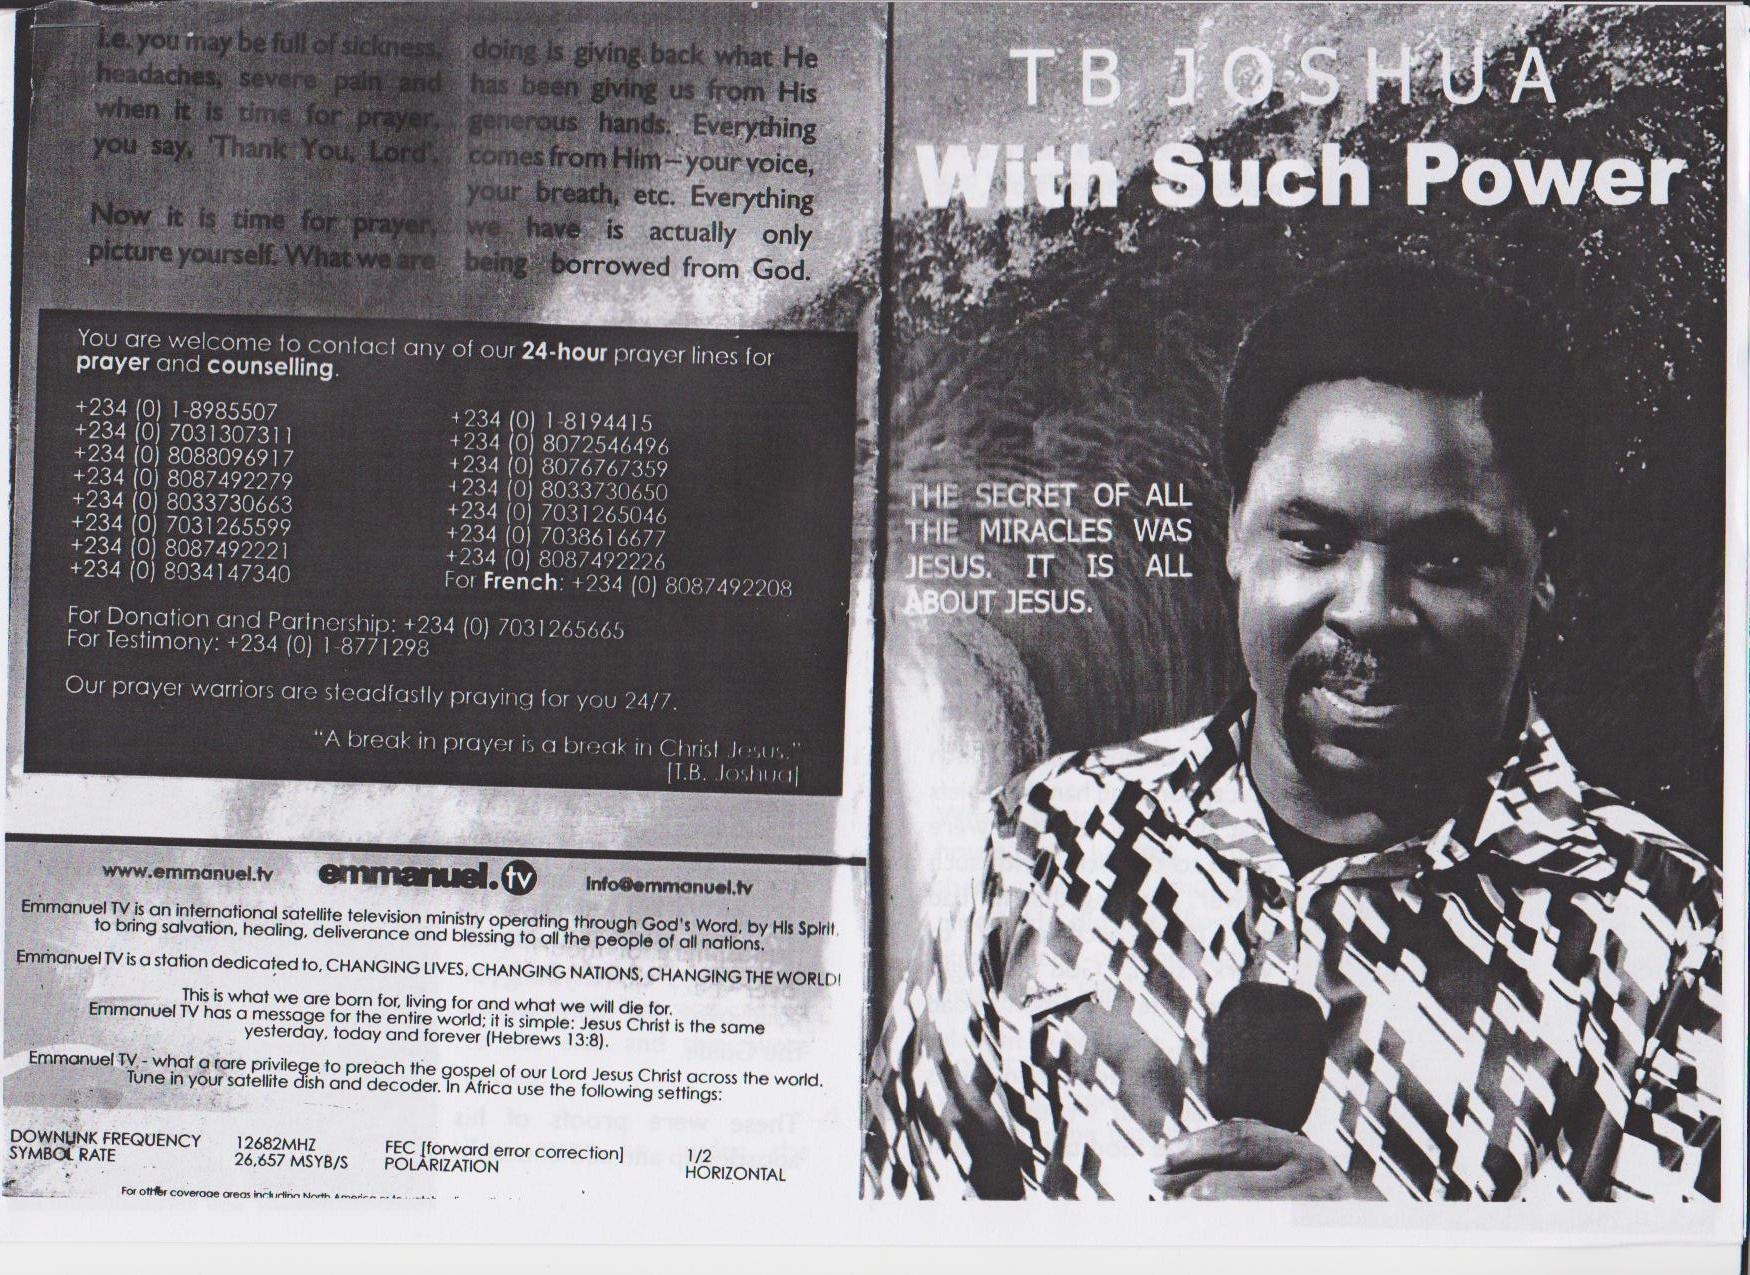 With Such Power(ful lies) | TB Joshua Watch